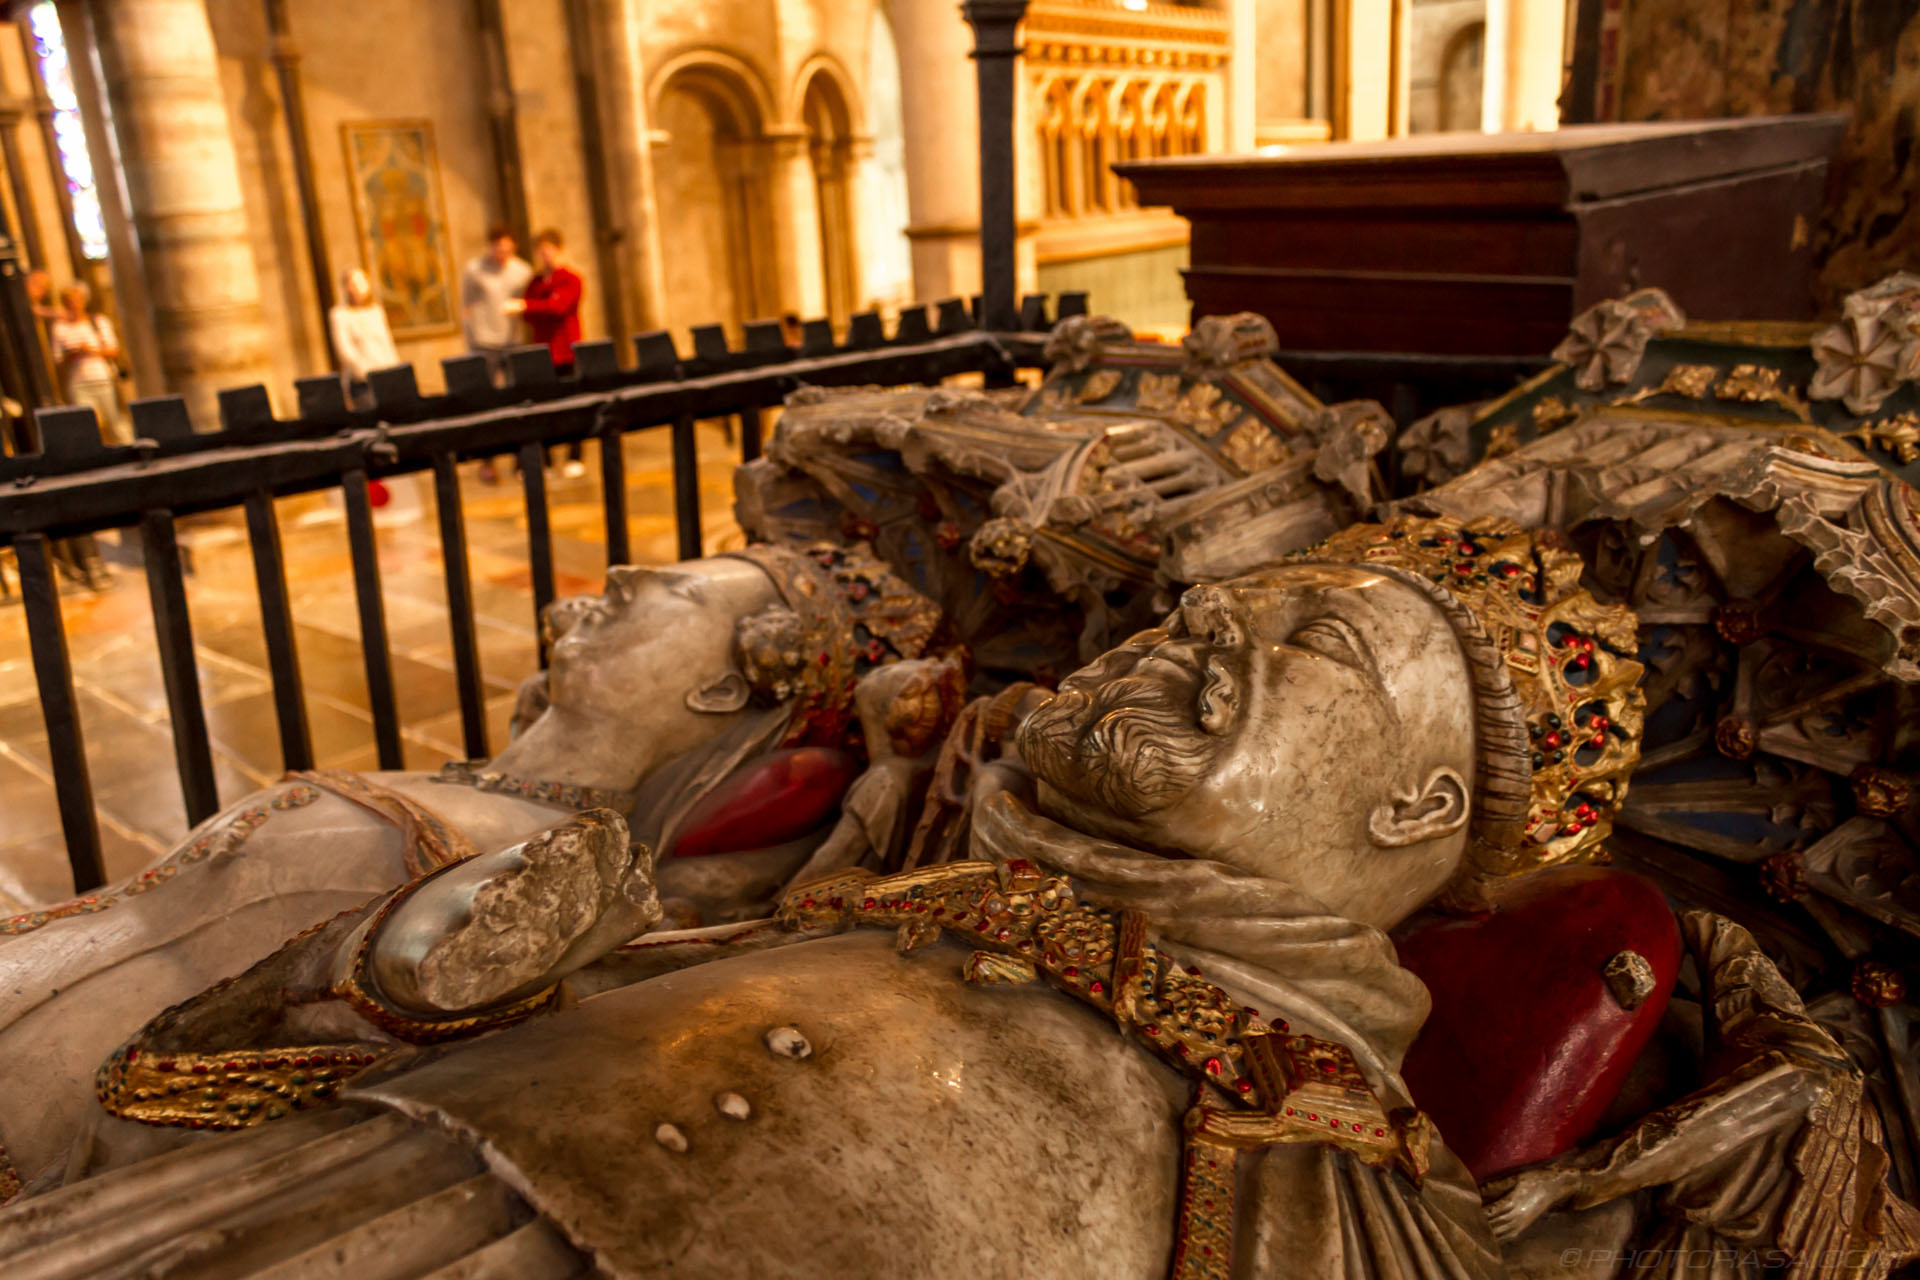 http://photorasa.com/canterbury-cathedral/tomb-of-king-henry-iv-and-joan-of-navarre/